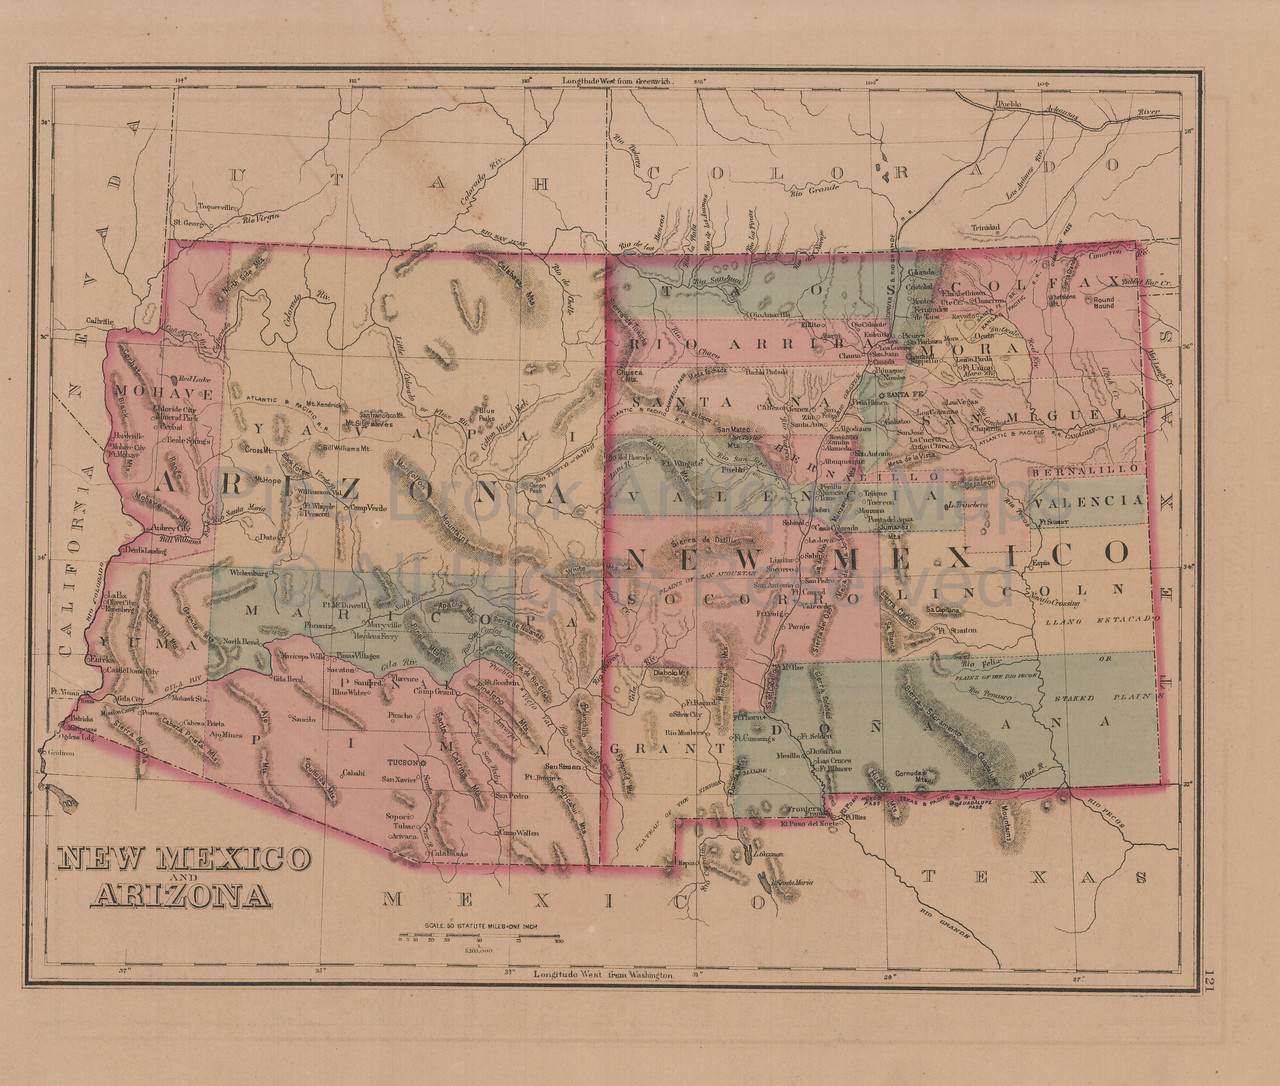 Authentic New Mexico Arizona Antique Map Gray 1876 for sale Home ...